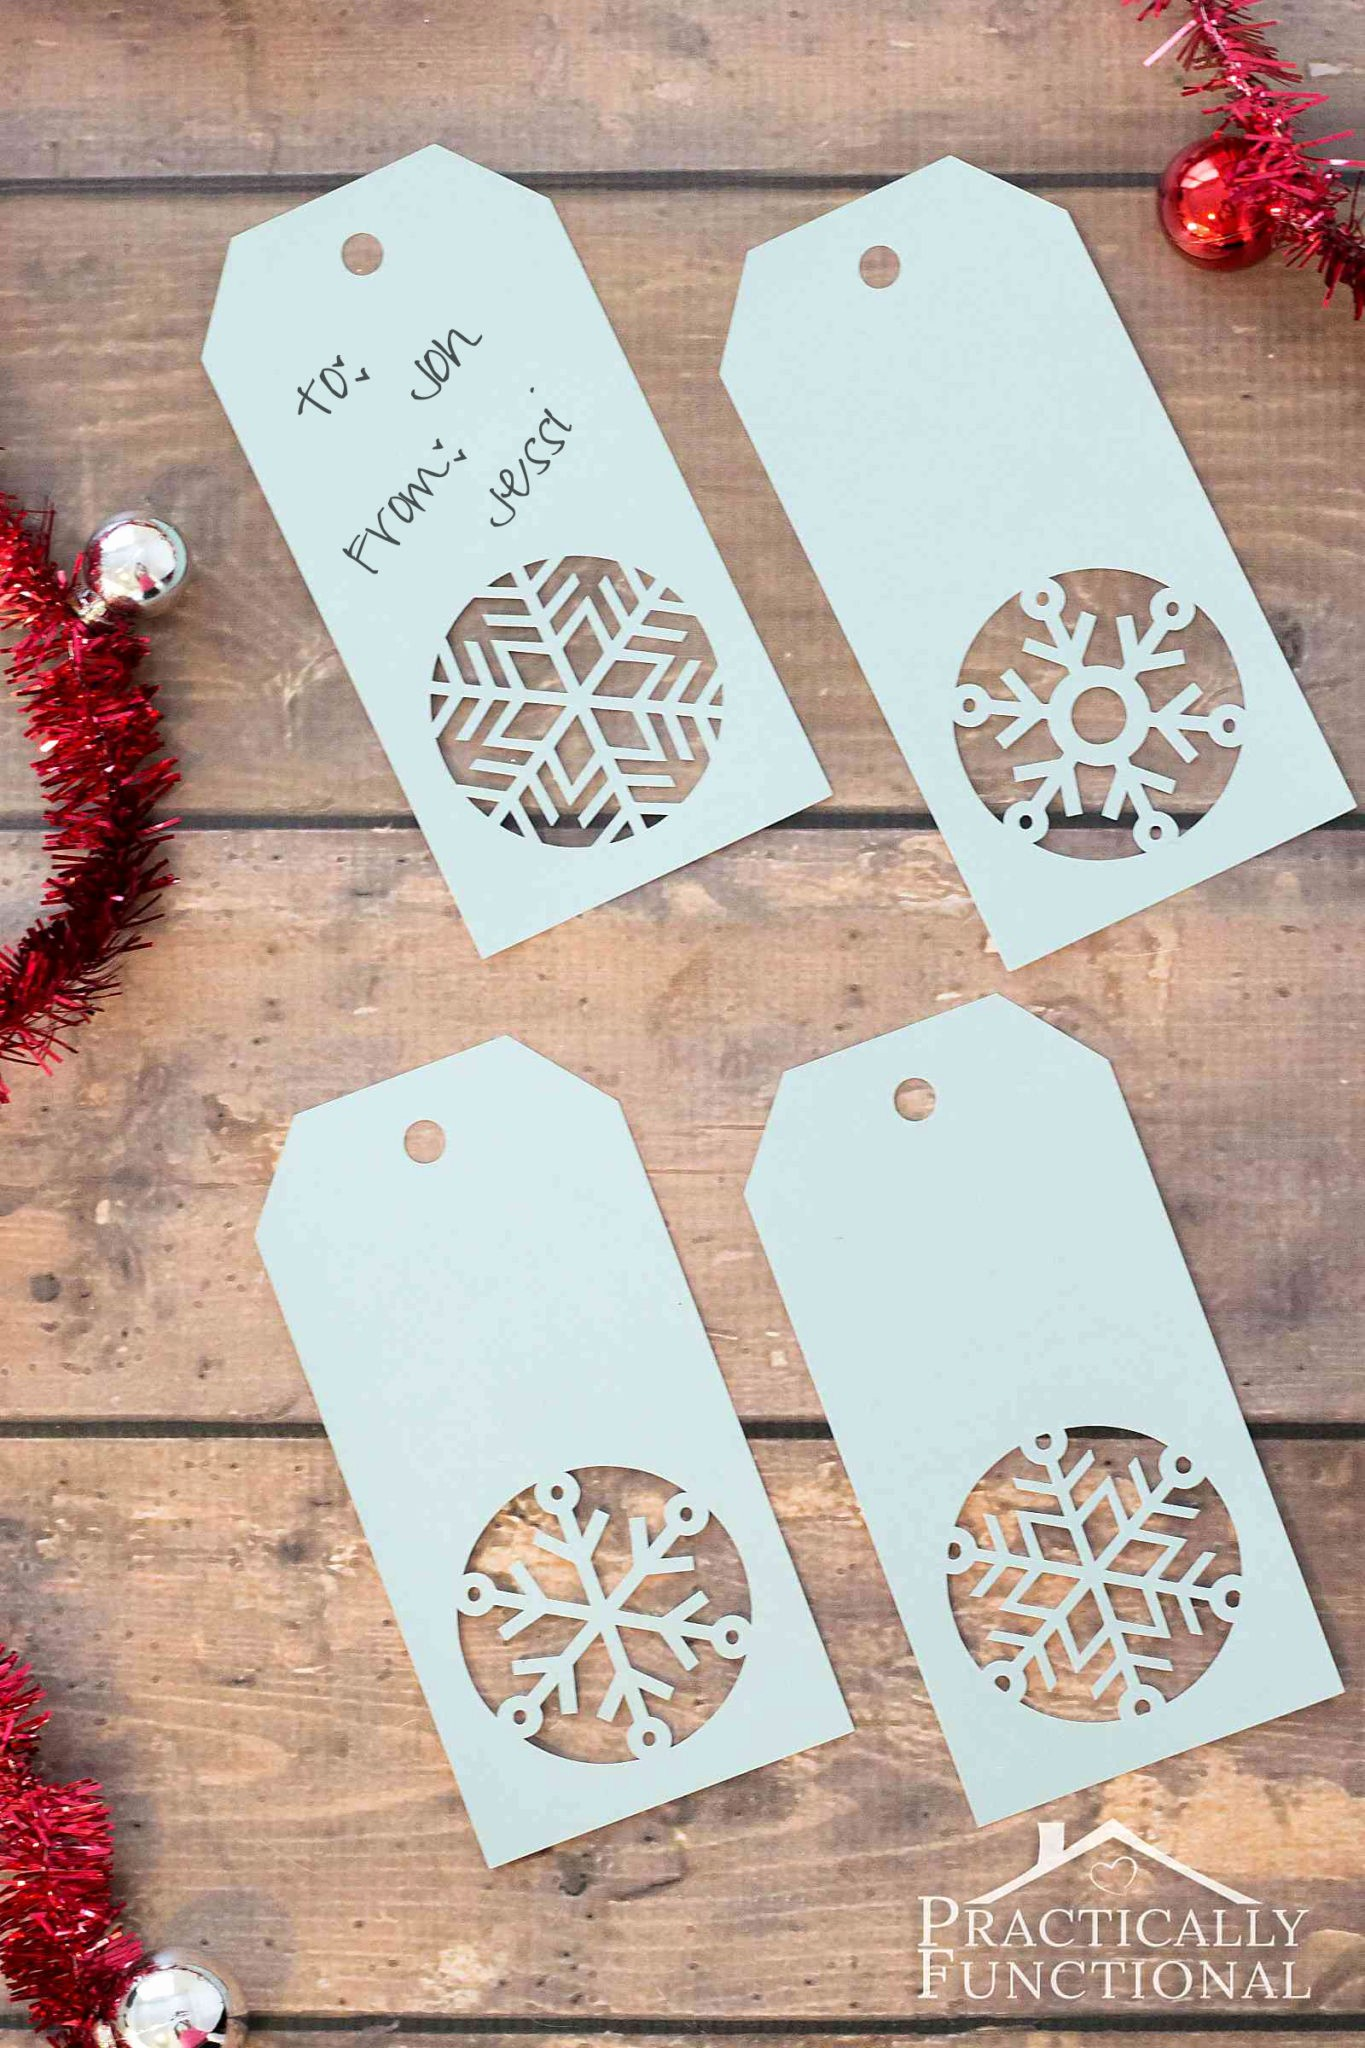 Christmas Gift Tags Template Free Elegant Handmade Snowflake Christmas Gift Tags Free Template